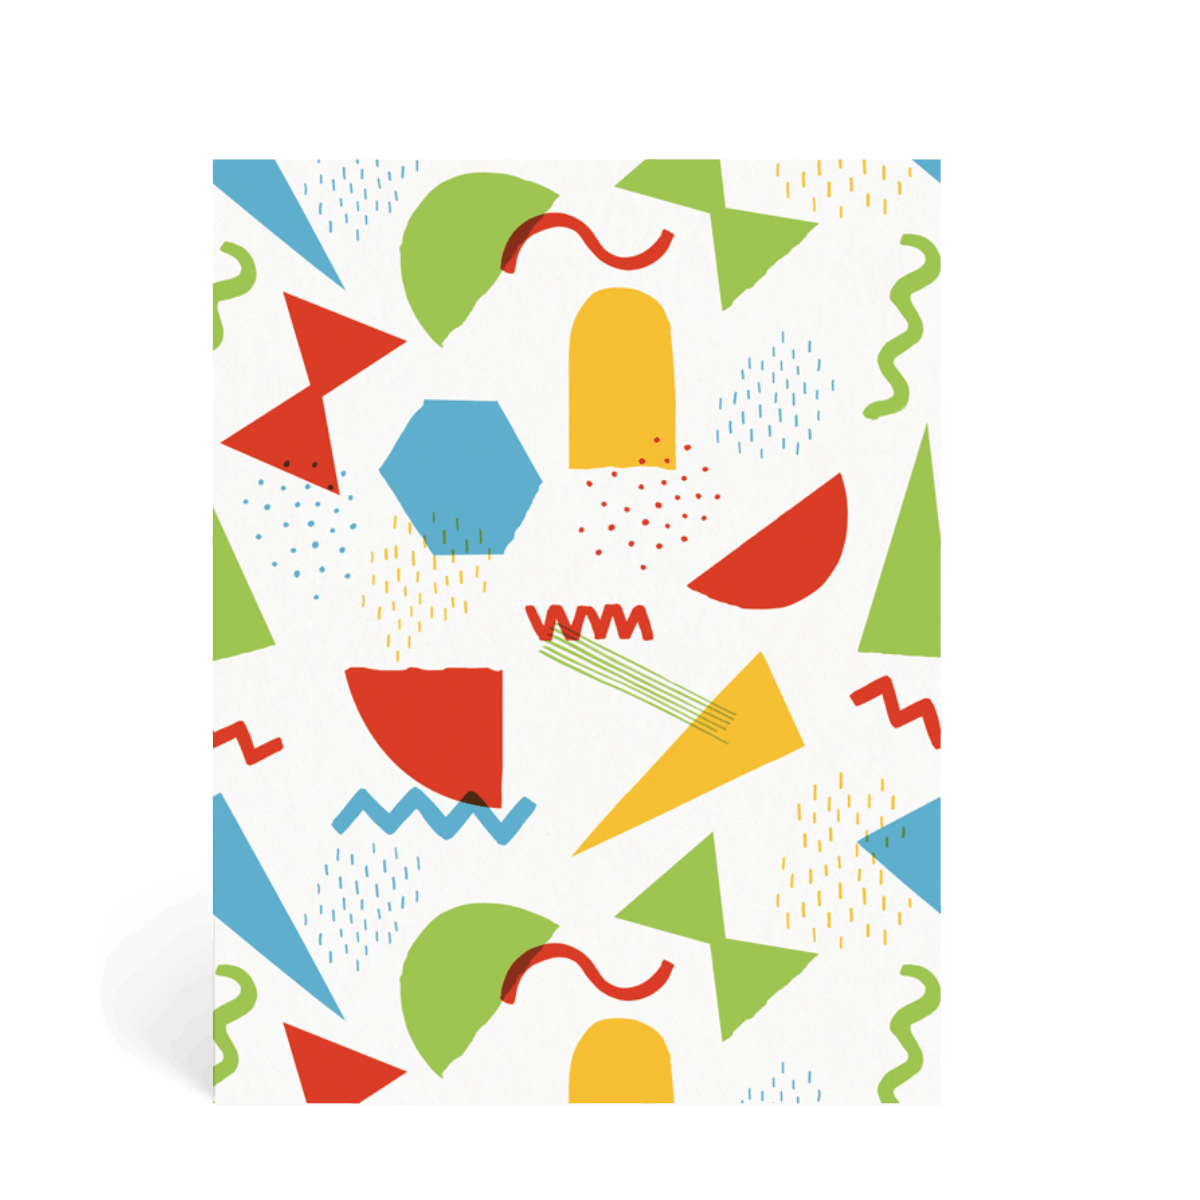 Https%3a%2f%2fwww.papier.com%2fproduct image%2f43403%2f31%2fshapes colours 11049 back 1534931784.png?ixlib=rb 1.1